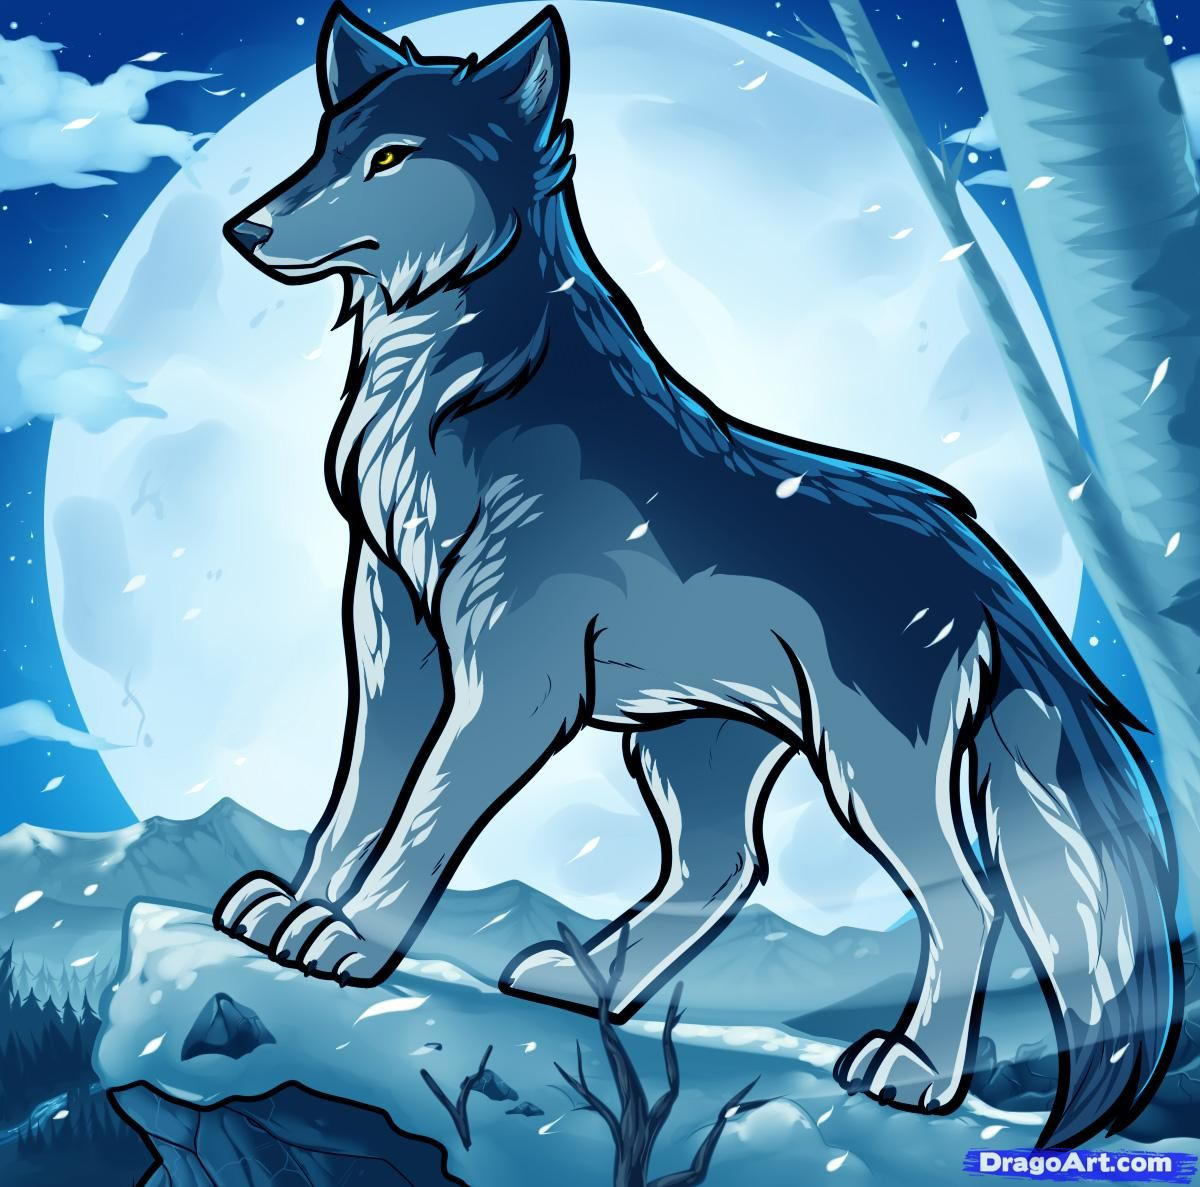 Drawings Of Anime People How To Draw Anime Wolves Anime Wolves Anime Wolf Cartoon Wolf Drawing Anime Drawings